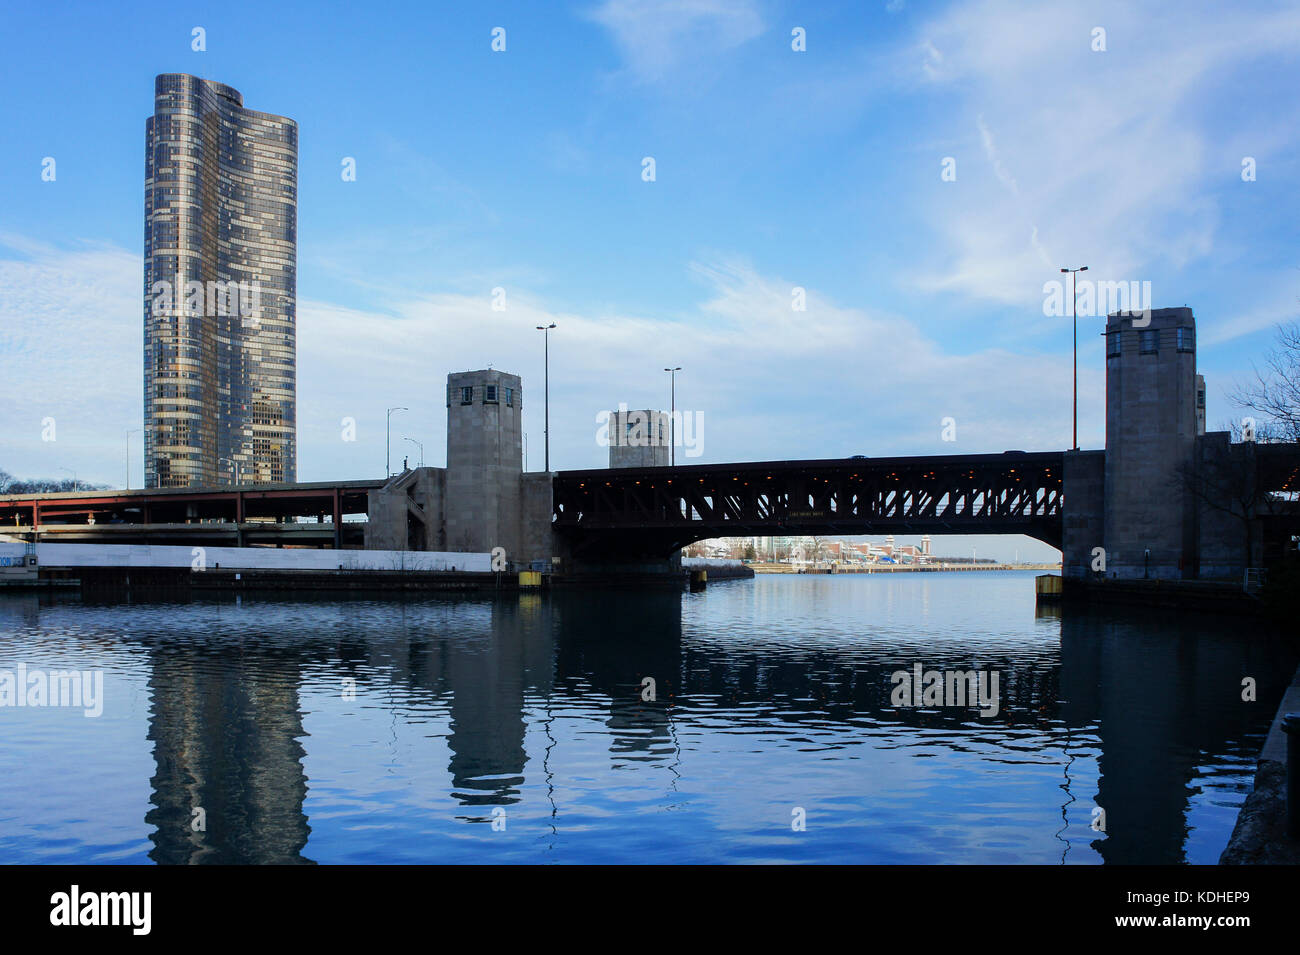 Afternoon scene of Lake Point Tower Condominium and bridge at Chicago, Illinois, United States - Stock Image